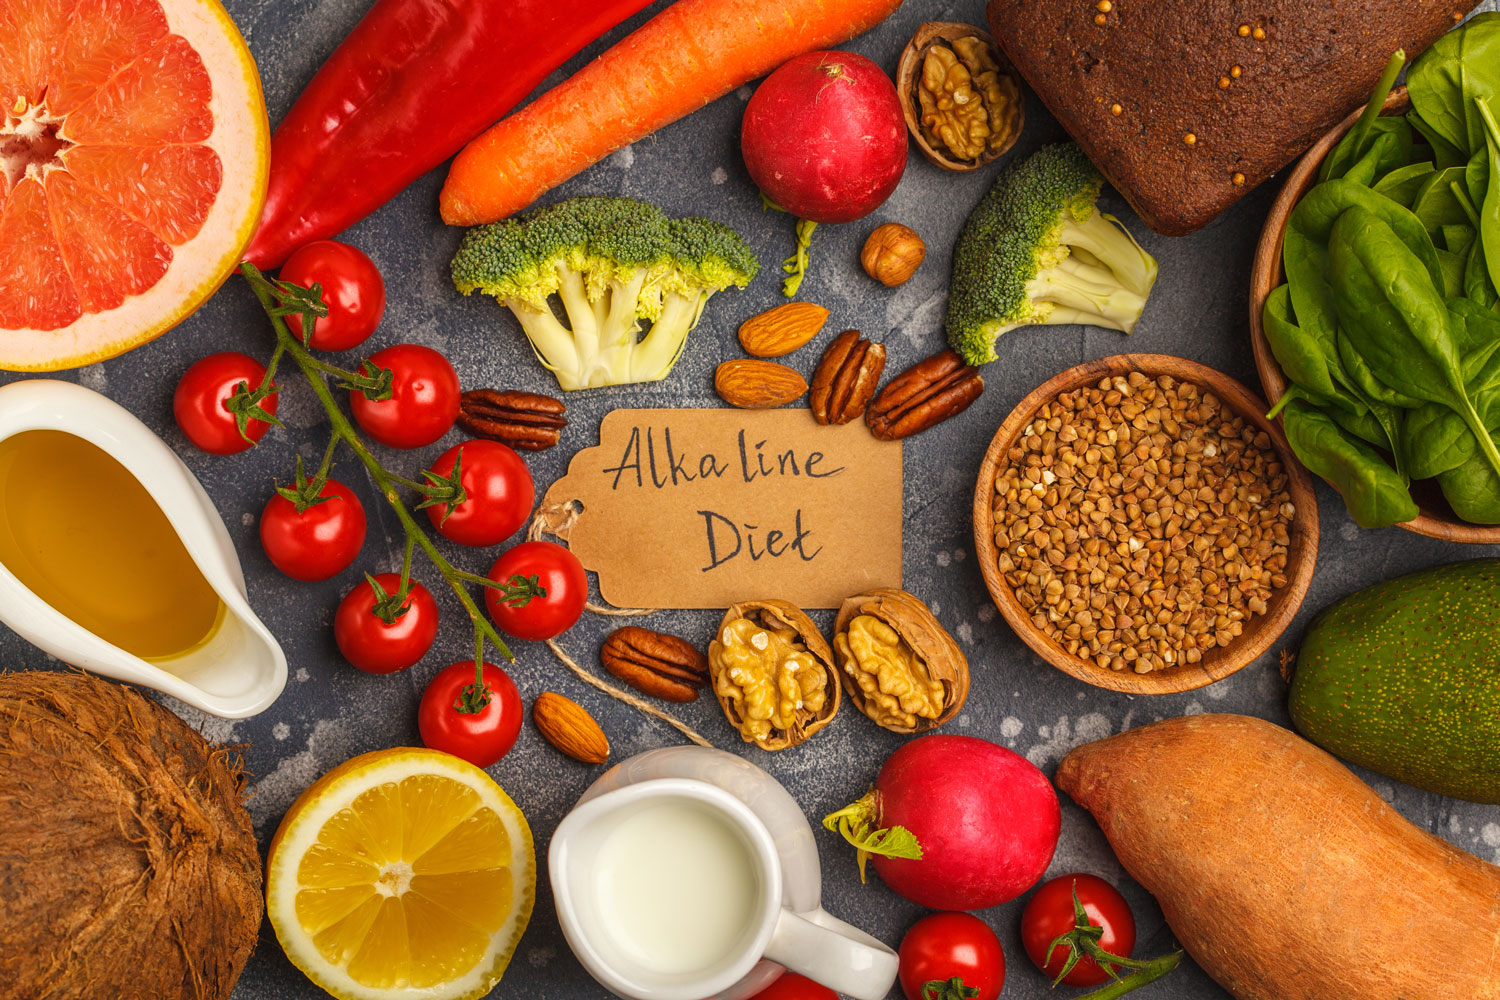 Things To Know Before Going For Alkaline Diet For Cancer